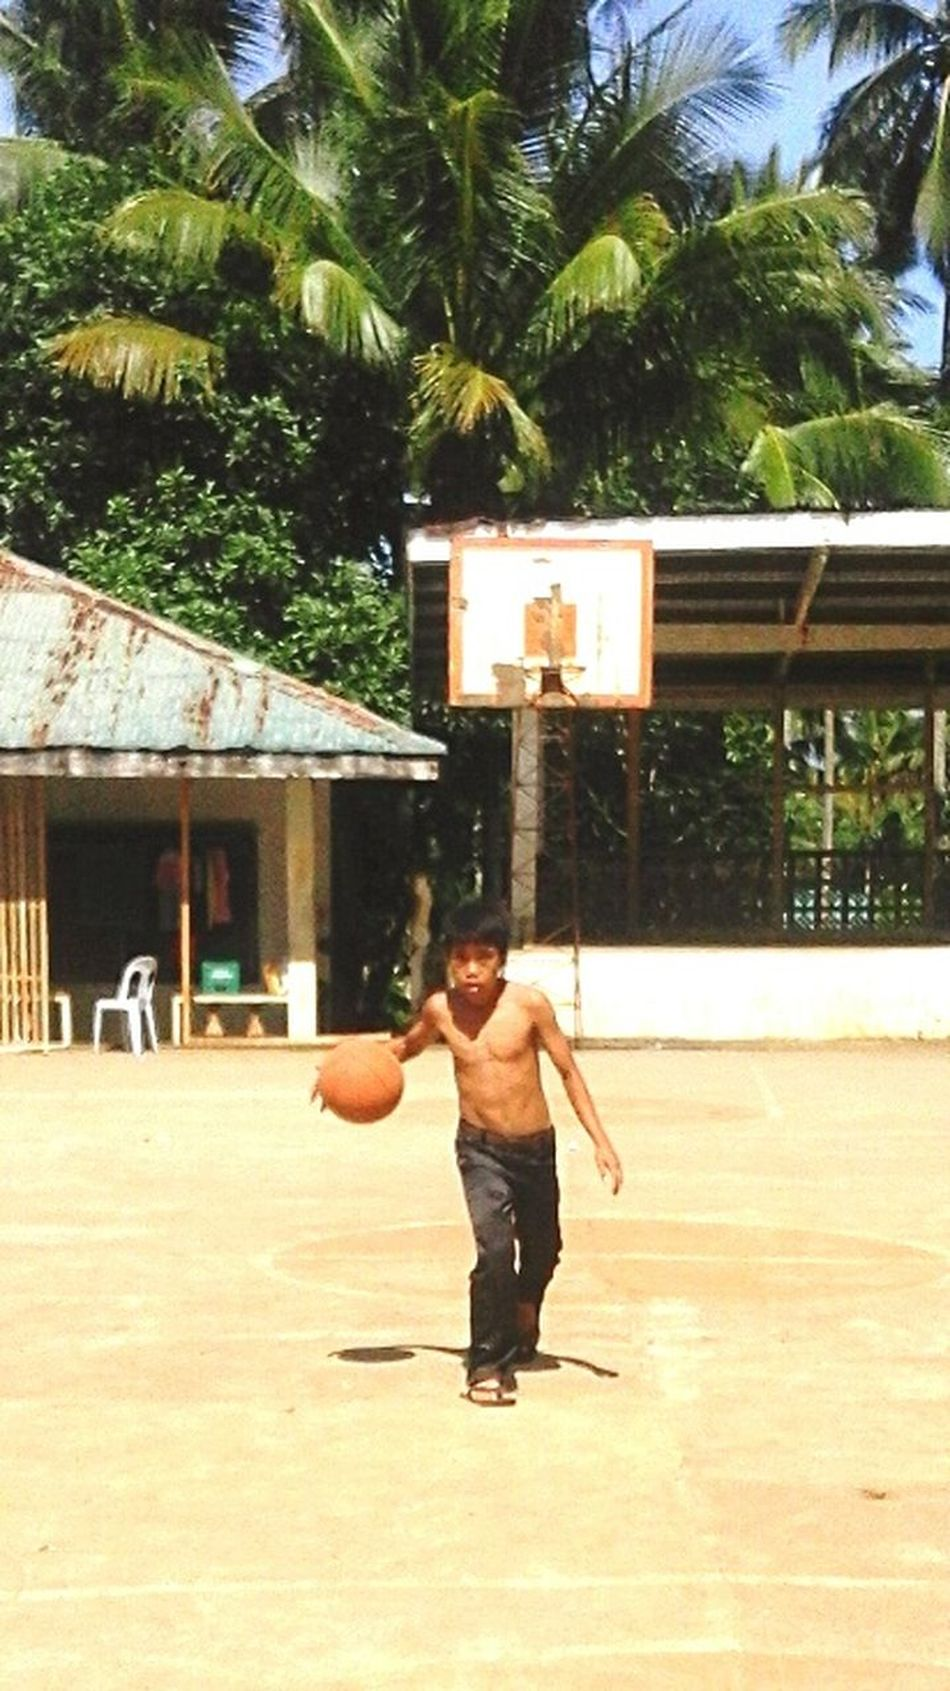 Finding New Frontiers Smallboy Subanentribe Meager Life Realtalk Basketball Reaching Child's Dream